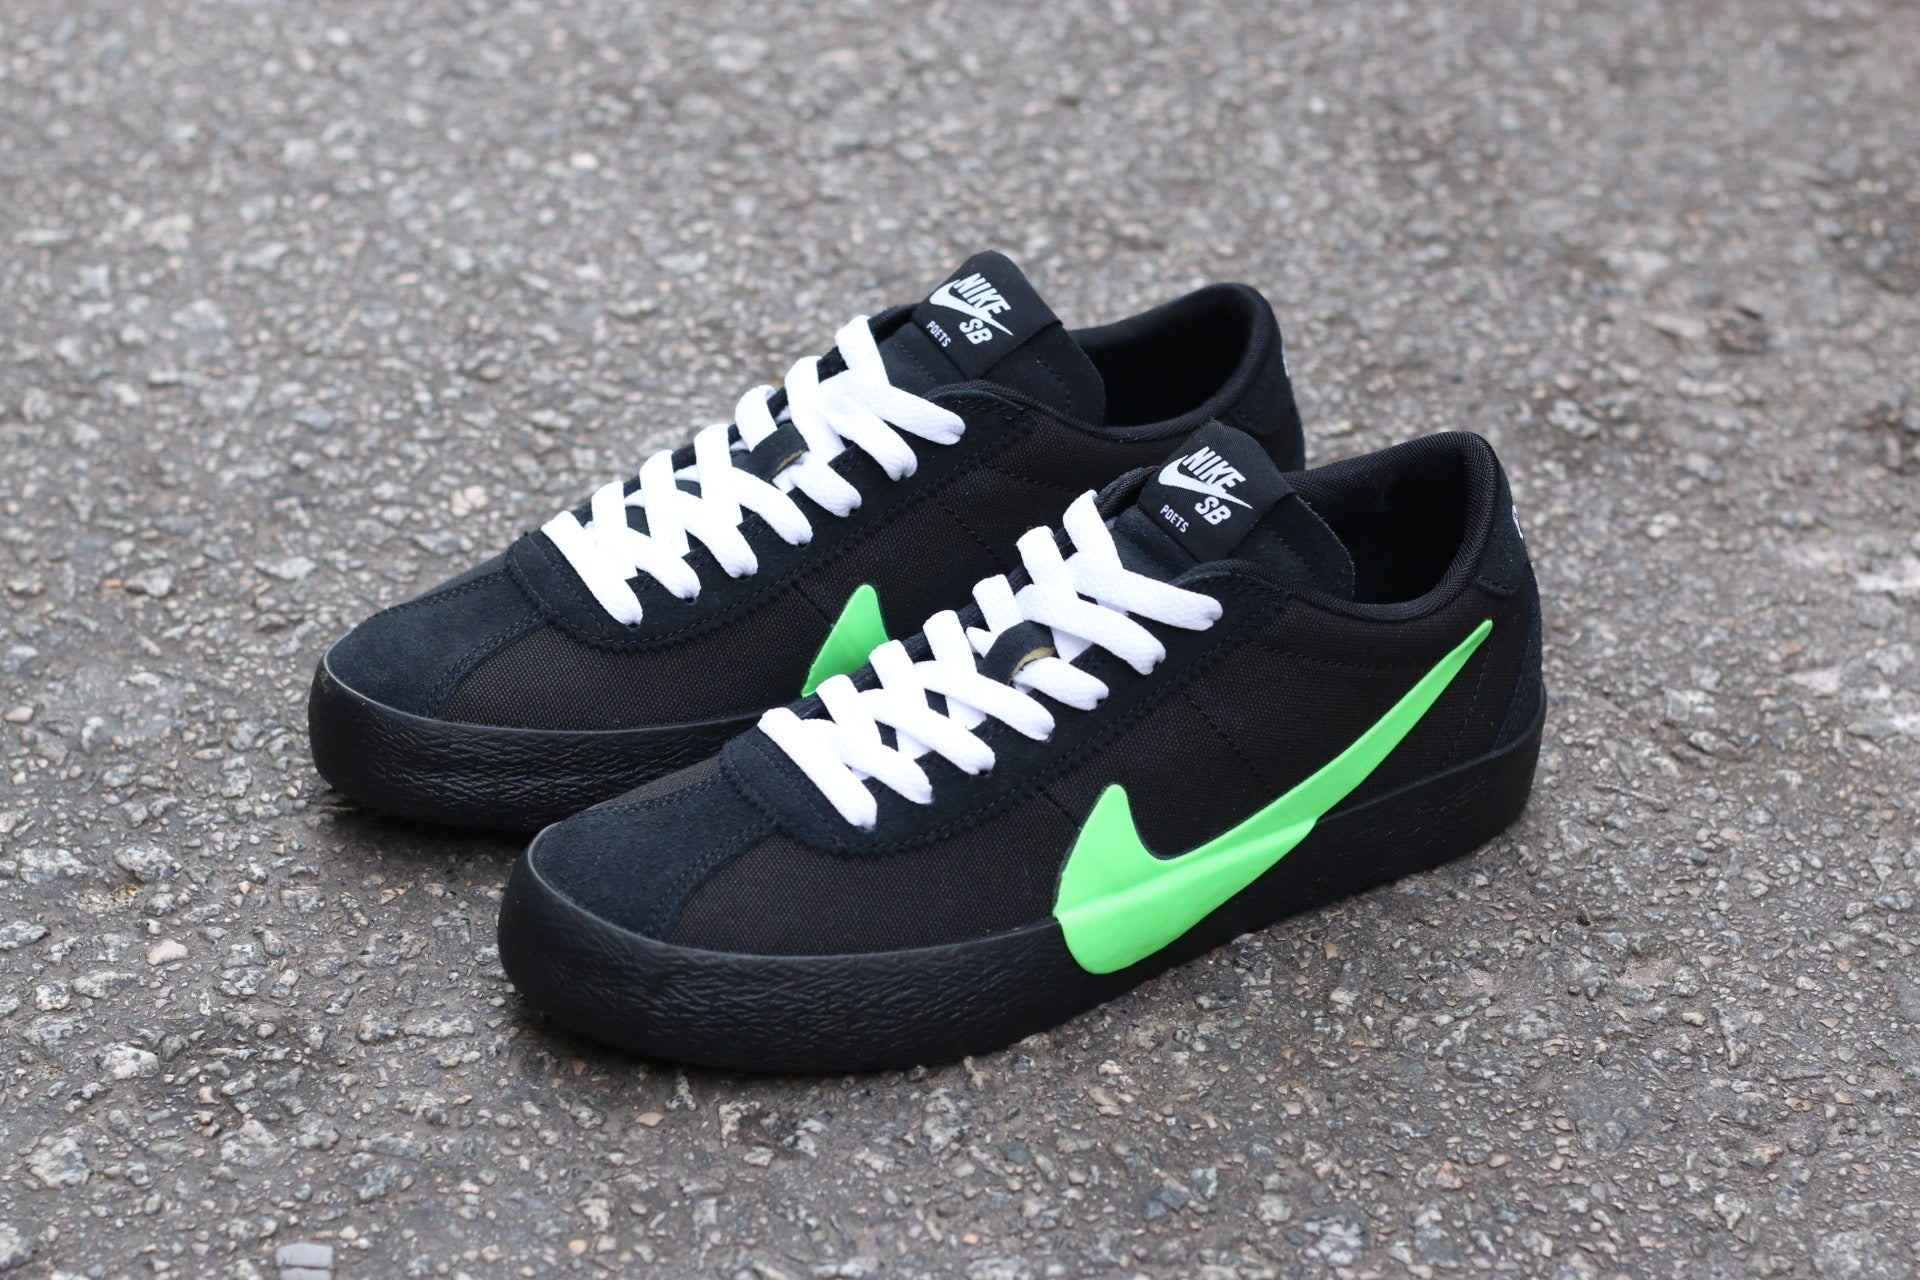 Conciso Gángster Torrente  Release Info POETS x Nike SB Bruin React